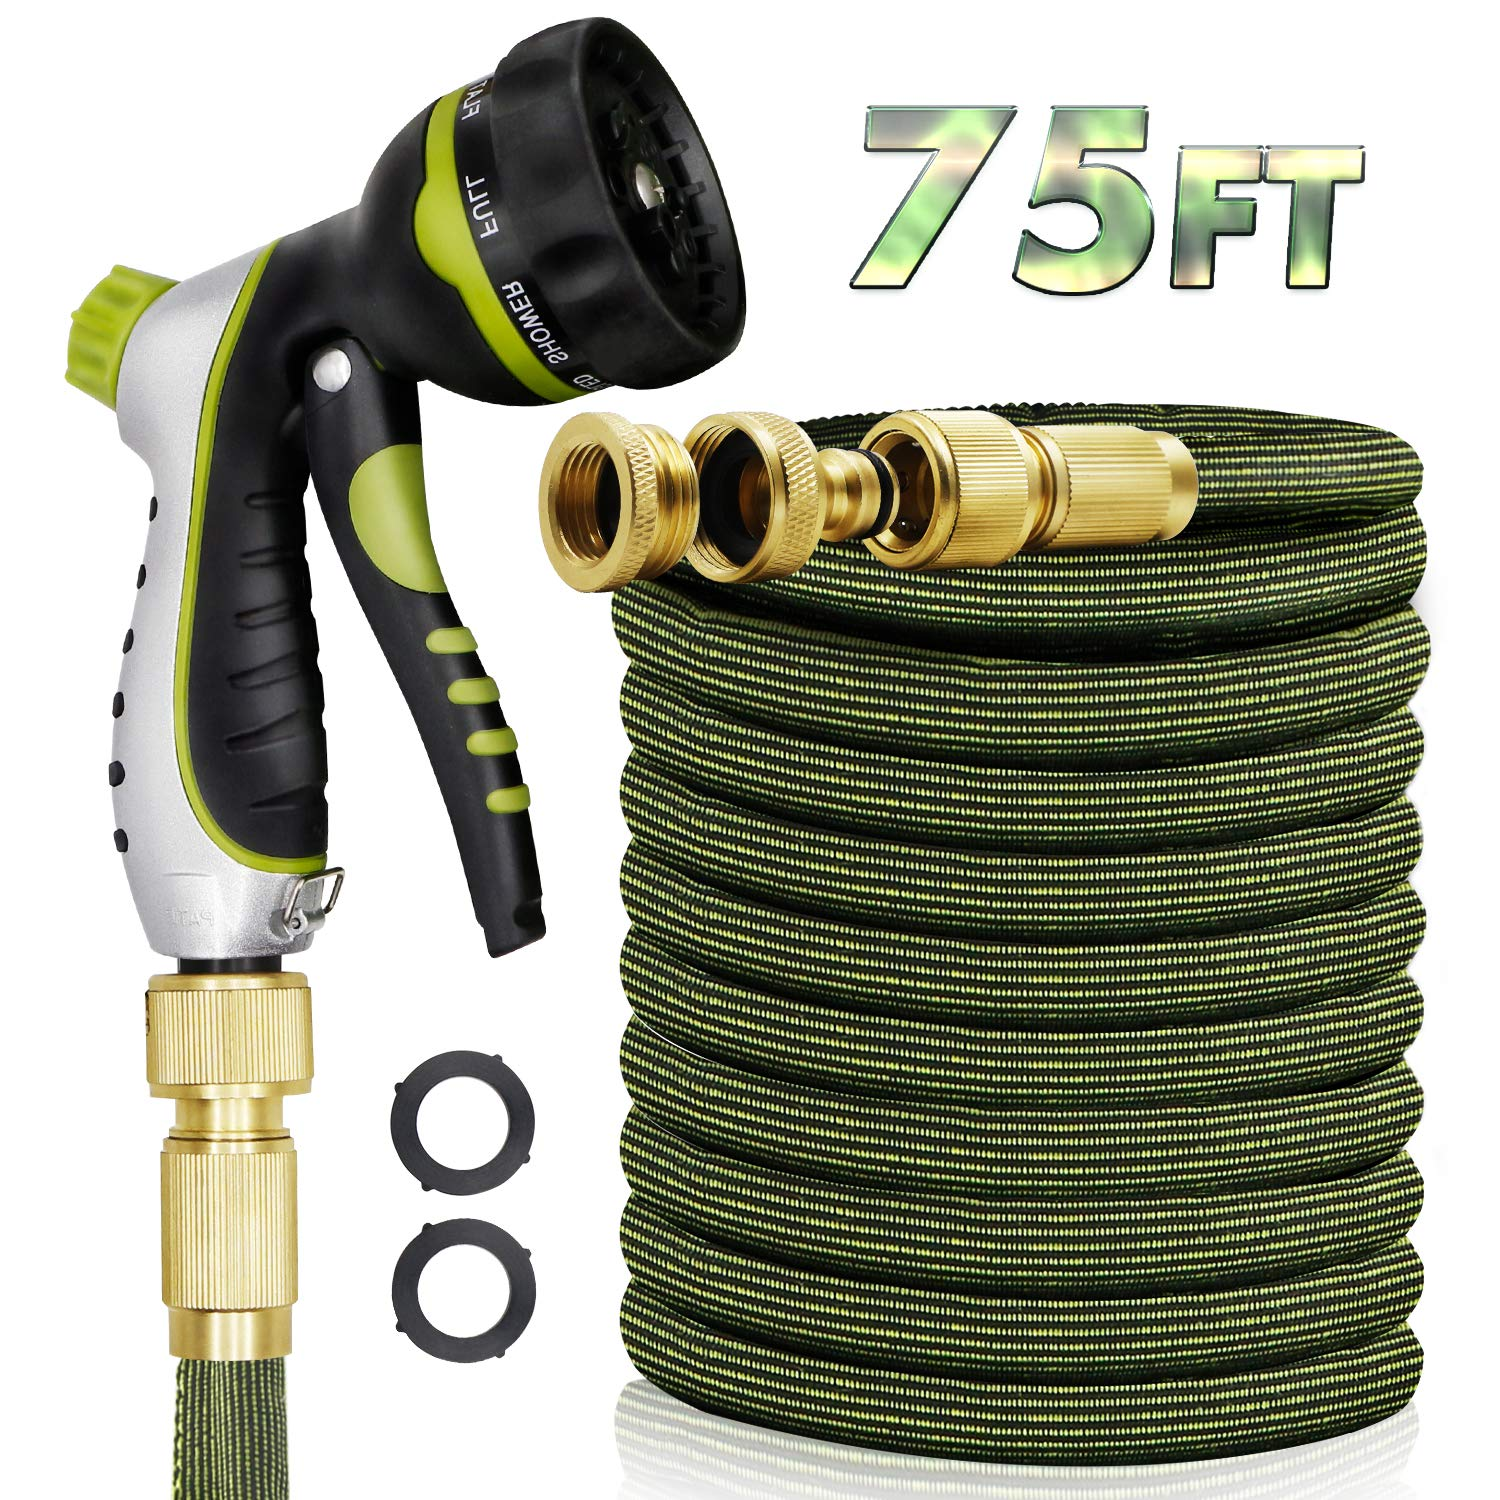 Another Quality Hose